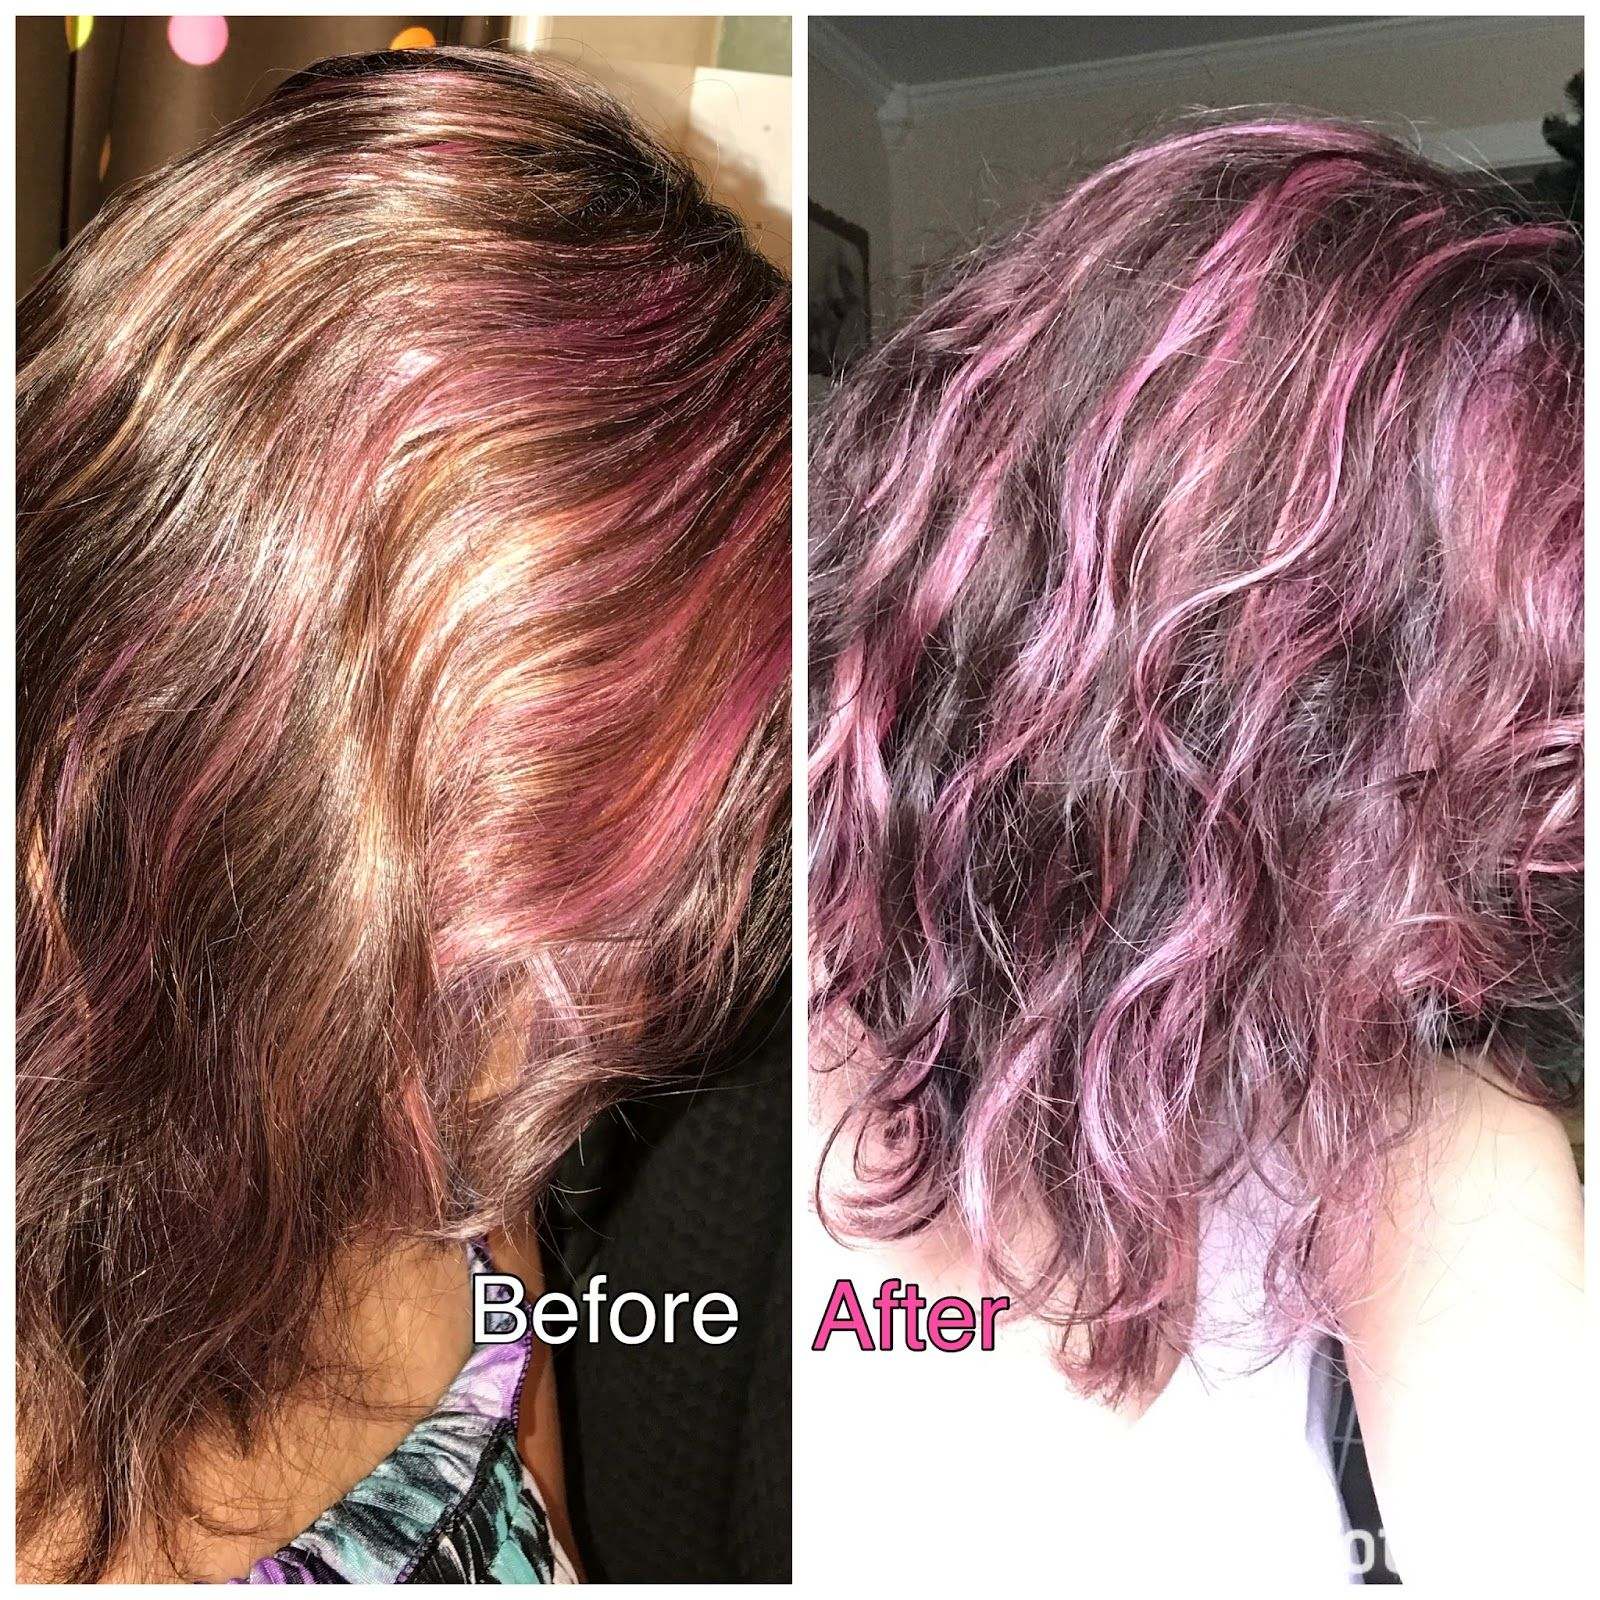 Manic Panic Cotton Candy Pink Pink Cotton Candy Fantasy Hair Color Dyed Hair